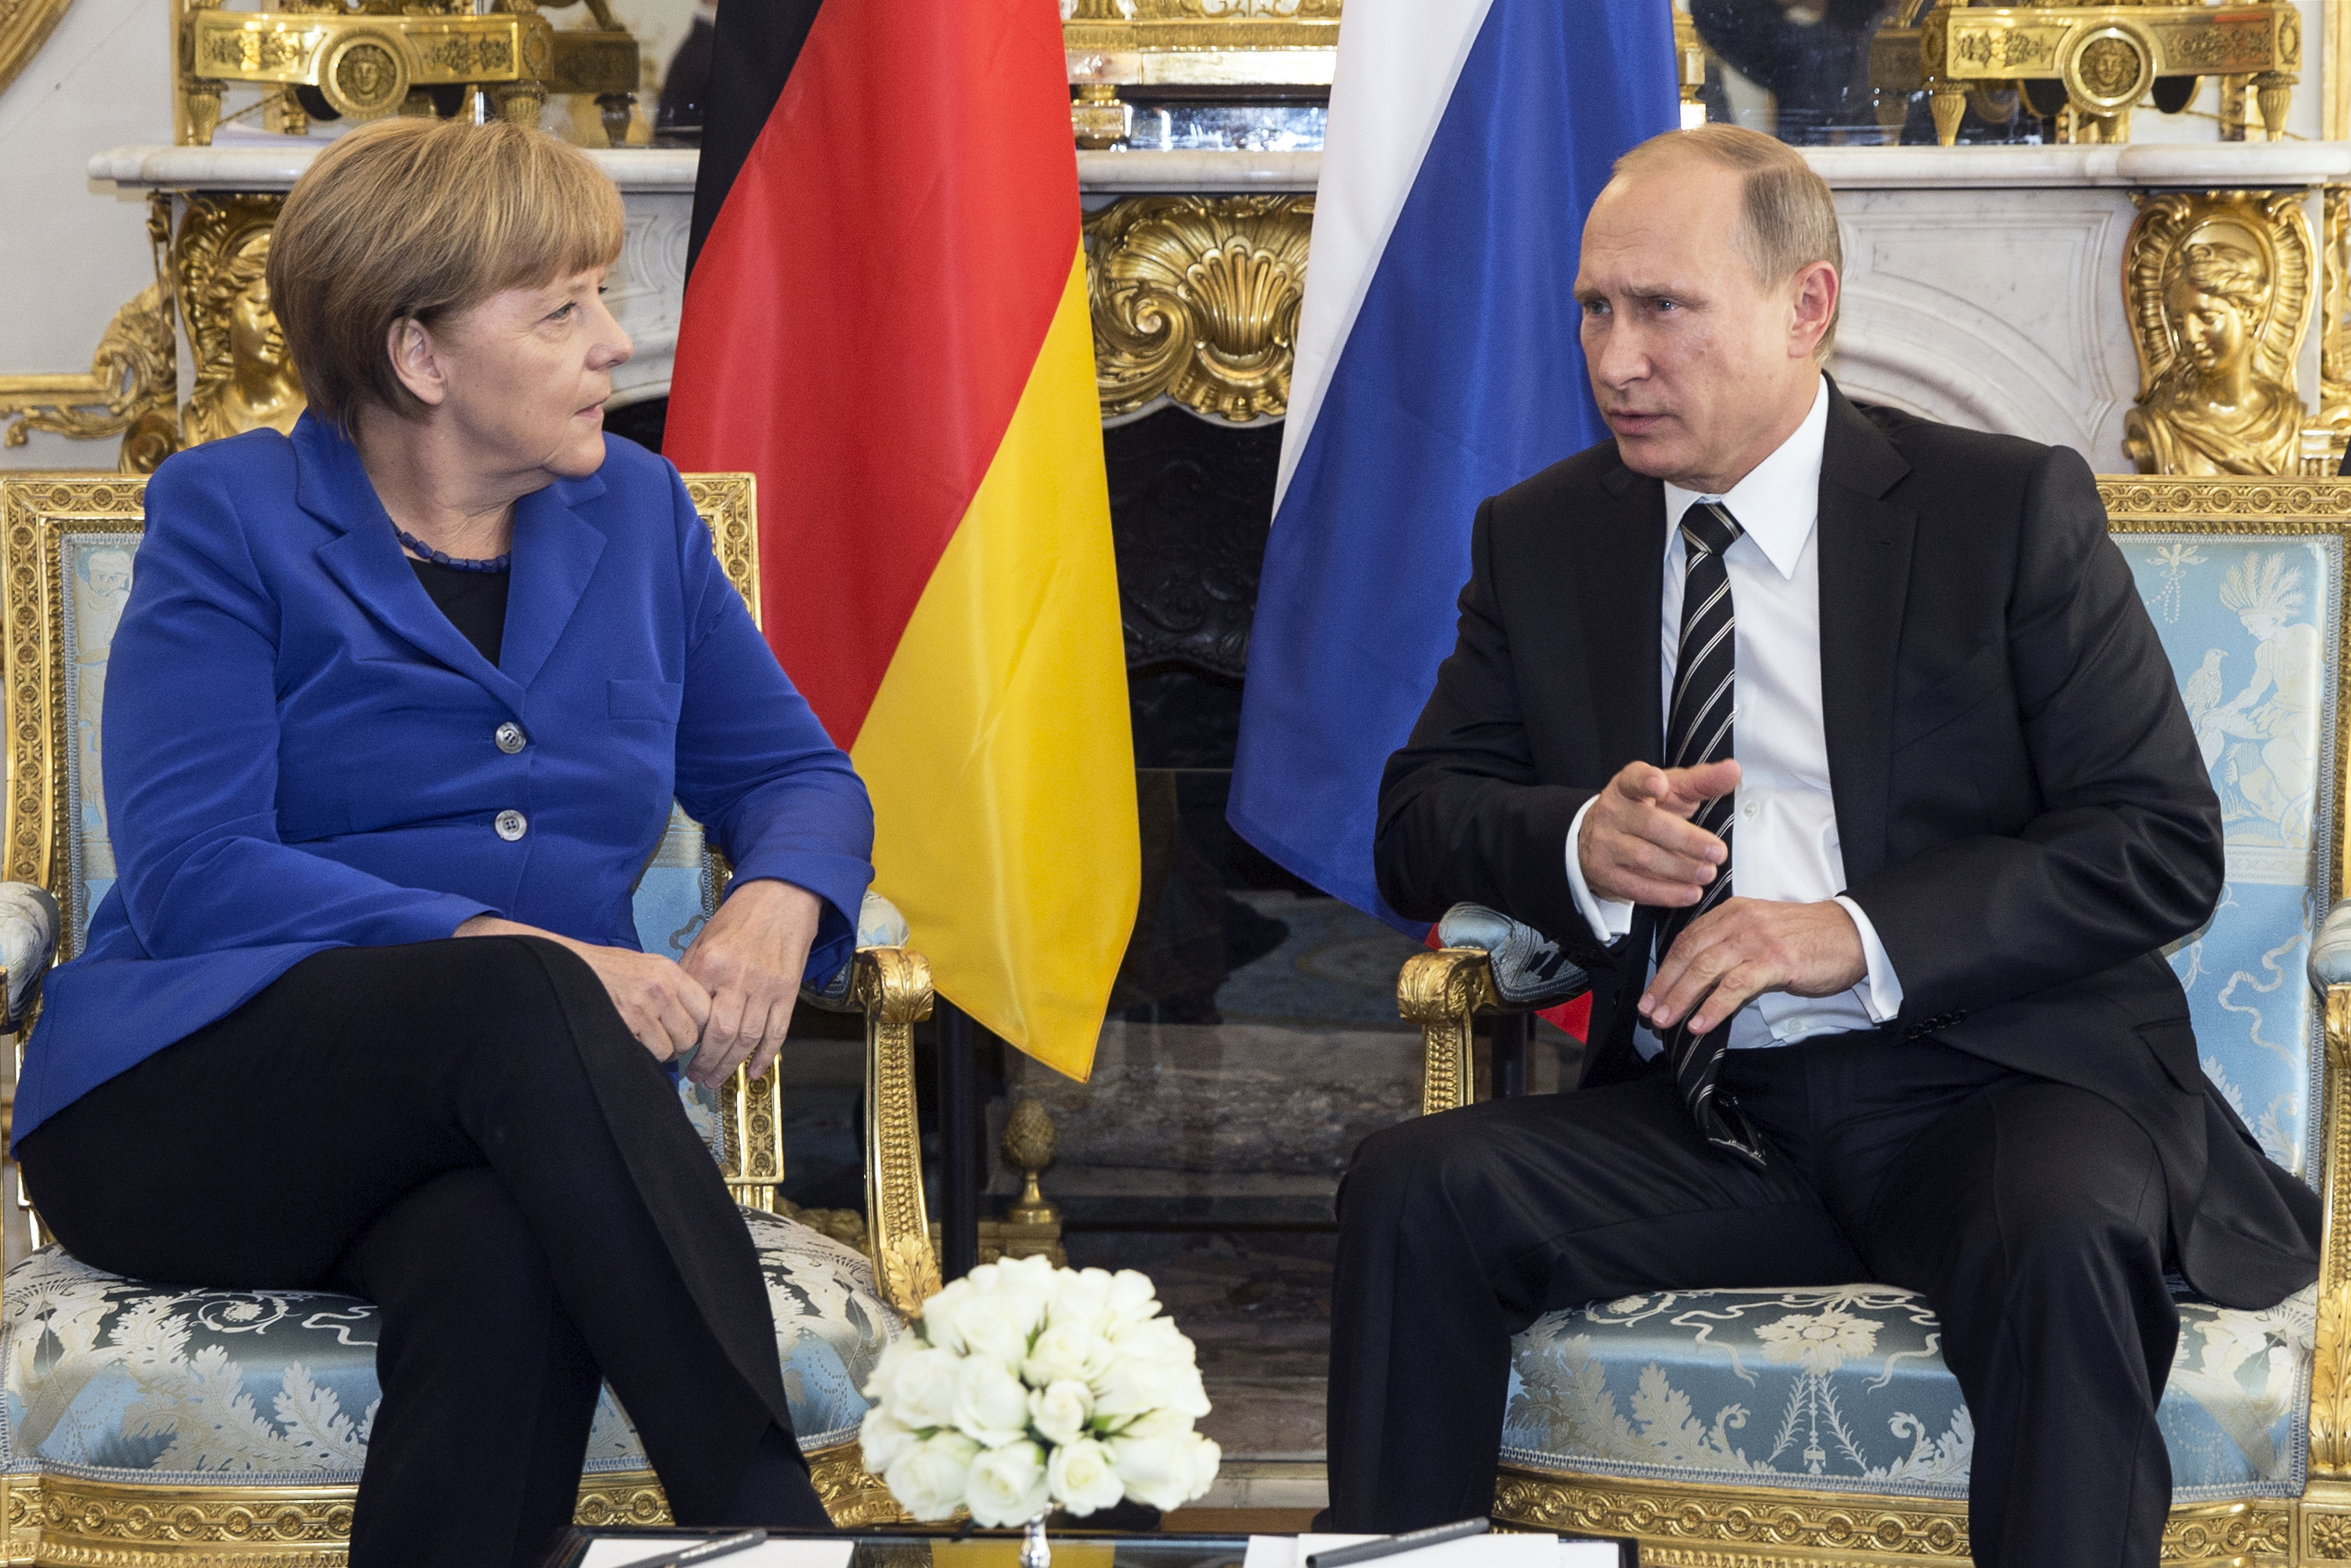 German Chancellor Angela Merkel (L) speaks with Russian President Vladimir Putin during a bilateral meeting prior to a summit on Ukraine at the Elysee Palace in Paris, France, October 2, 2015. France hosts a meeting with leaders of Russia, Germany and Ukraine in Paris for talks about Ukraine which were likely to be overshadowed by the conflict in Syria.   REUTERS/Etienne Laurent/Pool - RTS2QCP